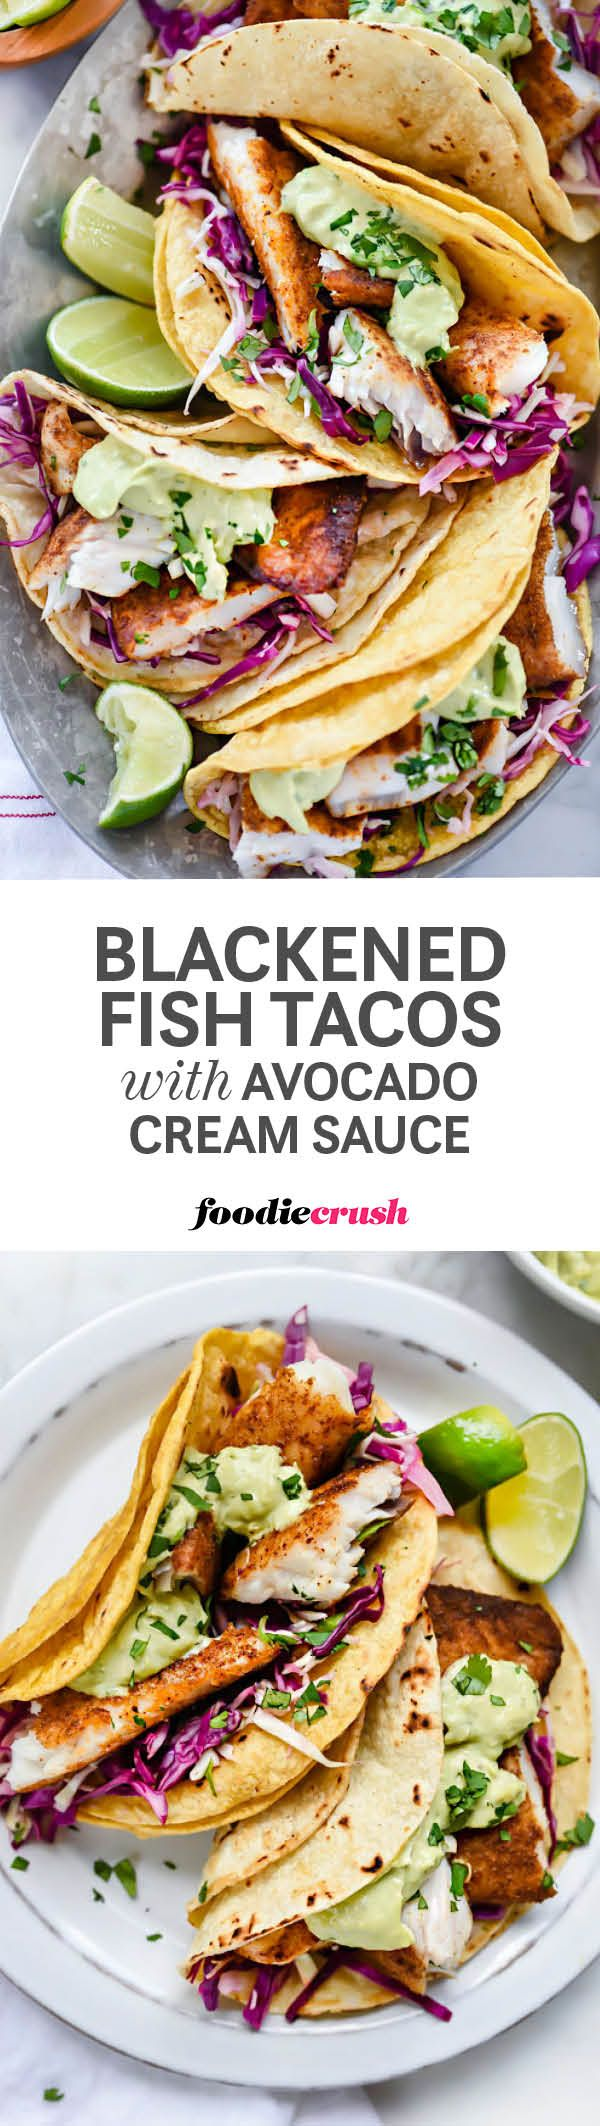 Baja-style fish tacos get a blackened cajun fix cooled off with an avocado cilantro tartar sauce and cabbage for a fast and easy taco meal. | foodiecrush.com #tacos #fishtacos